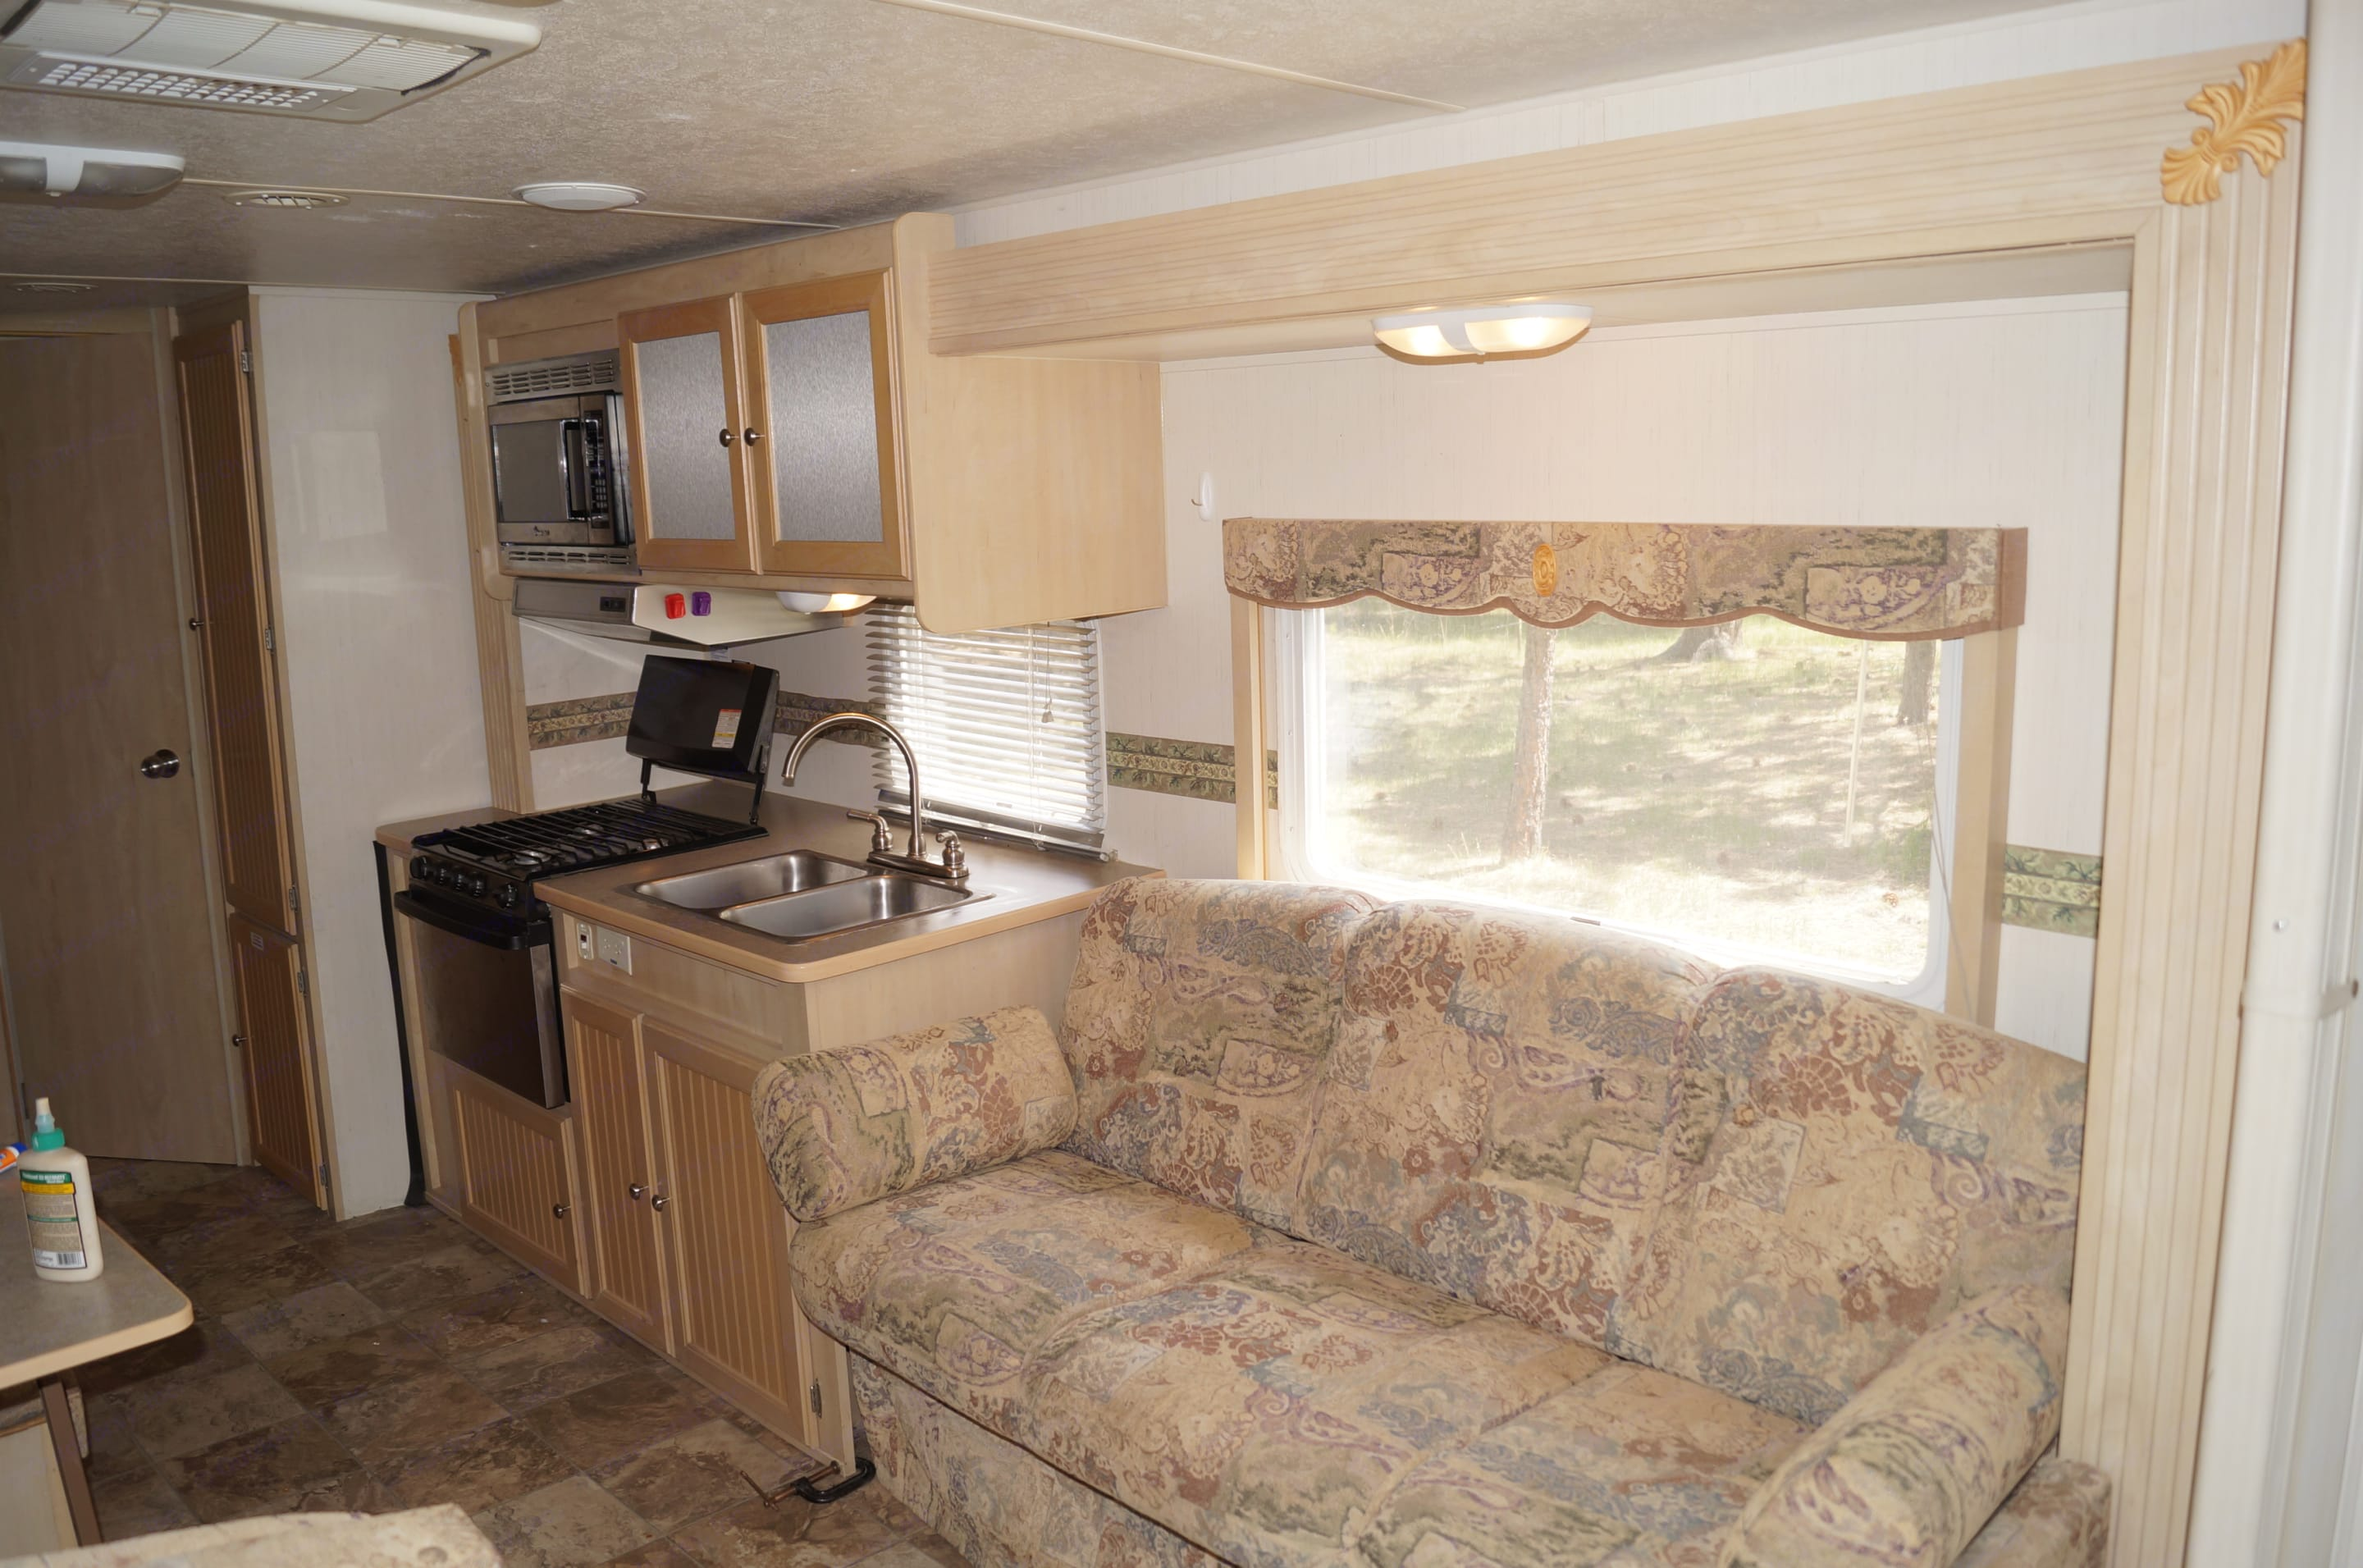 Couch folds down for sleeping. Forest River Grand Surveyor 2004